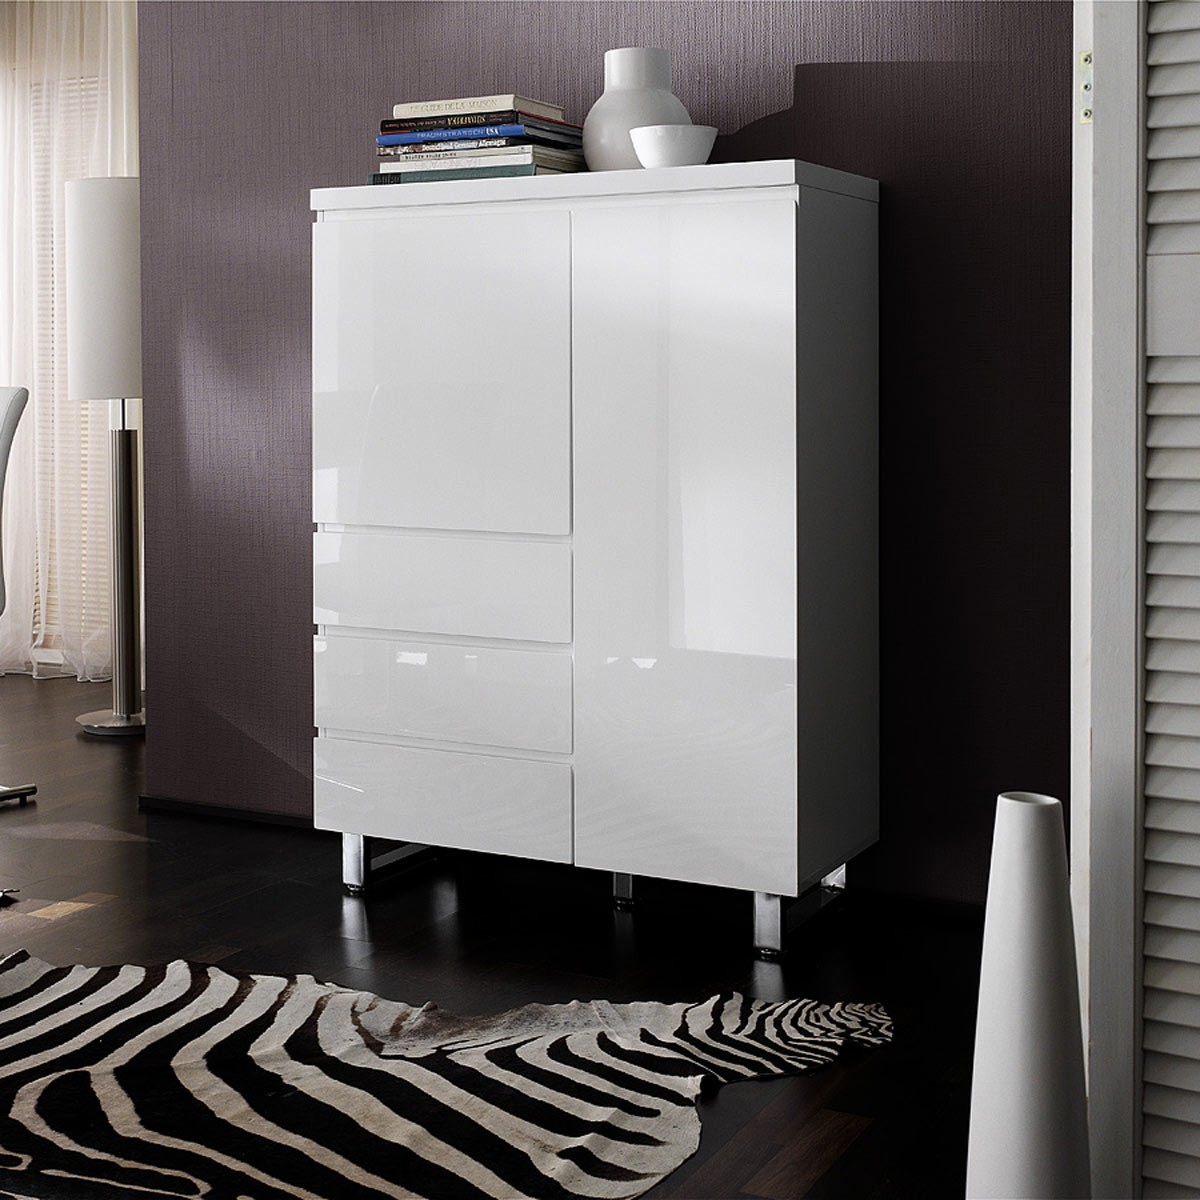 highboard sideboard anrichte kommode modern in hochglanz lack wei ebay. Black Bedroom Furniture Sets. Home Design Ideas